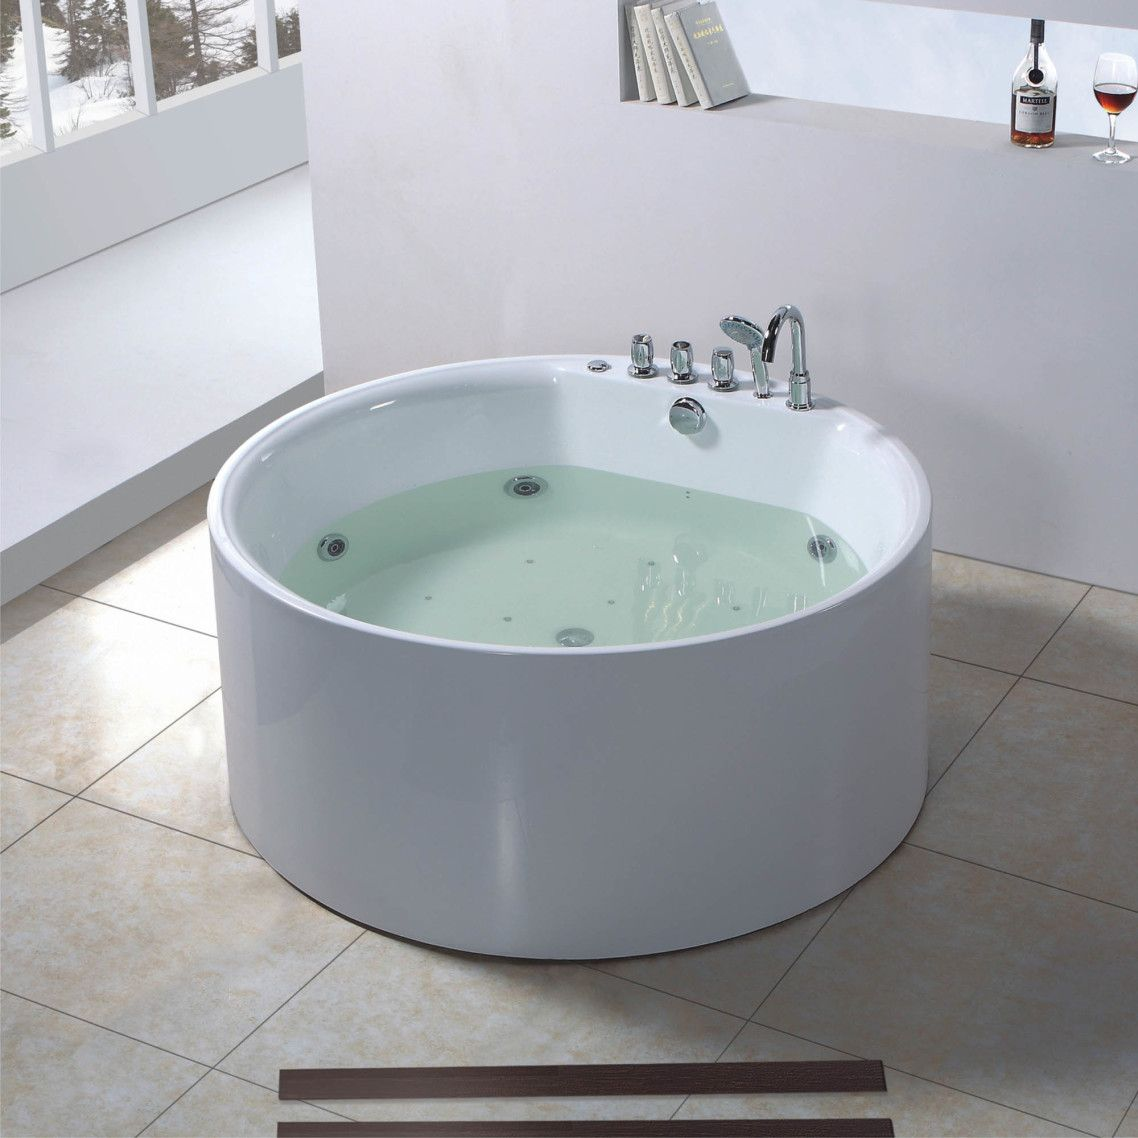 Baths For Sale Cool Round White Walk In Baths Jacuzzi Bathtub On ...